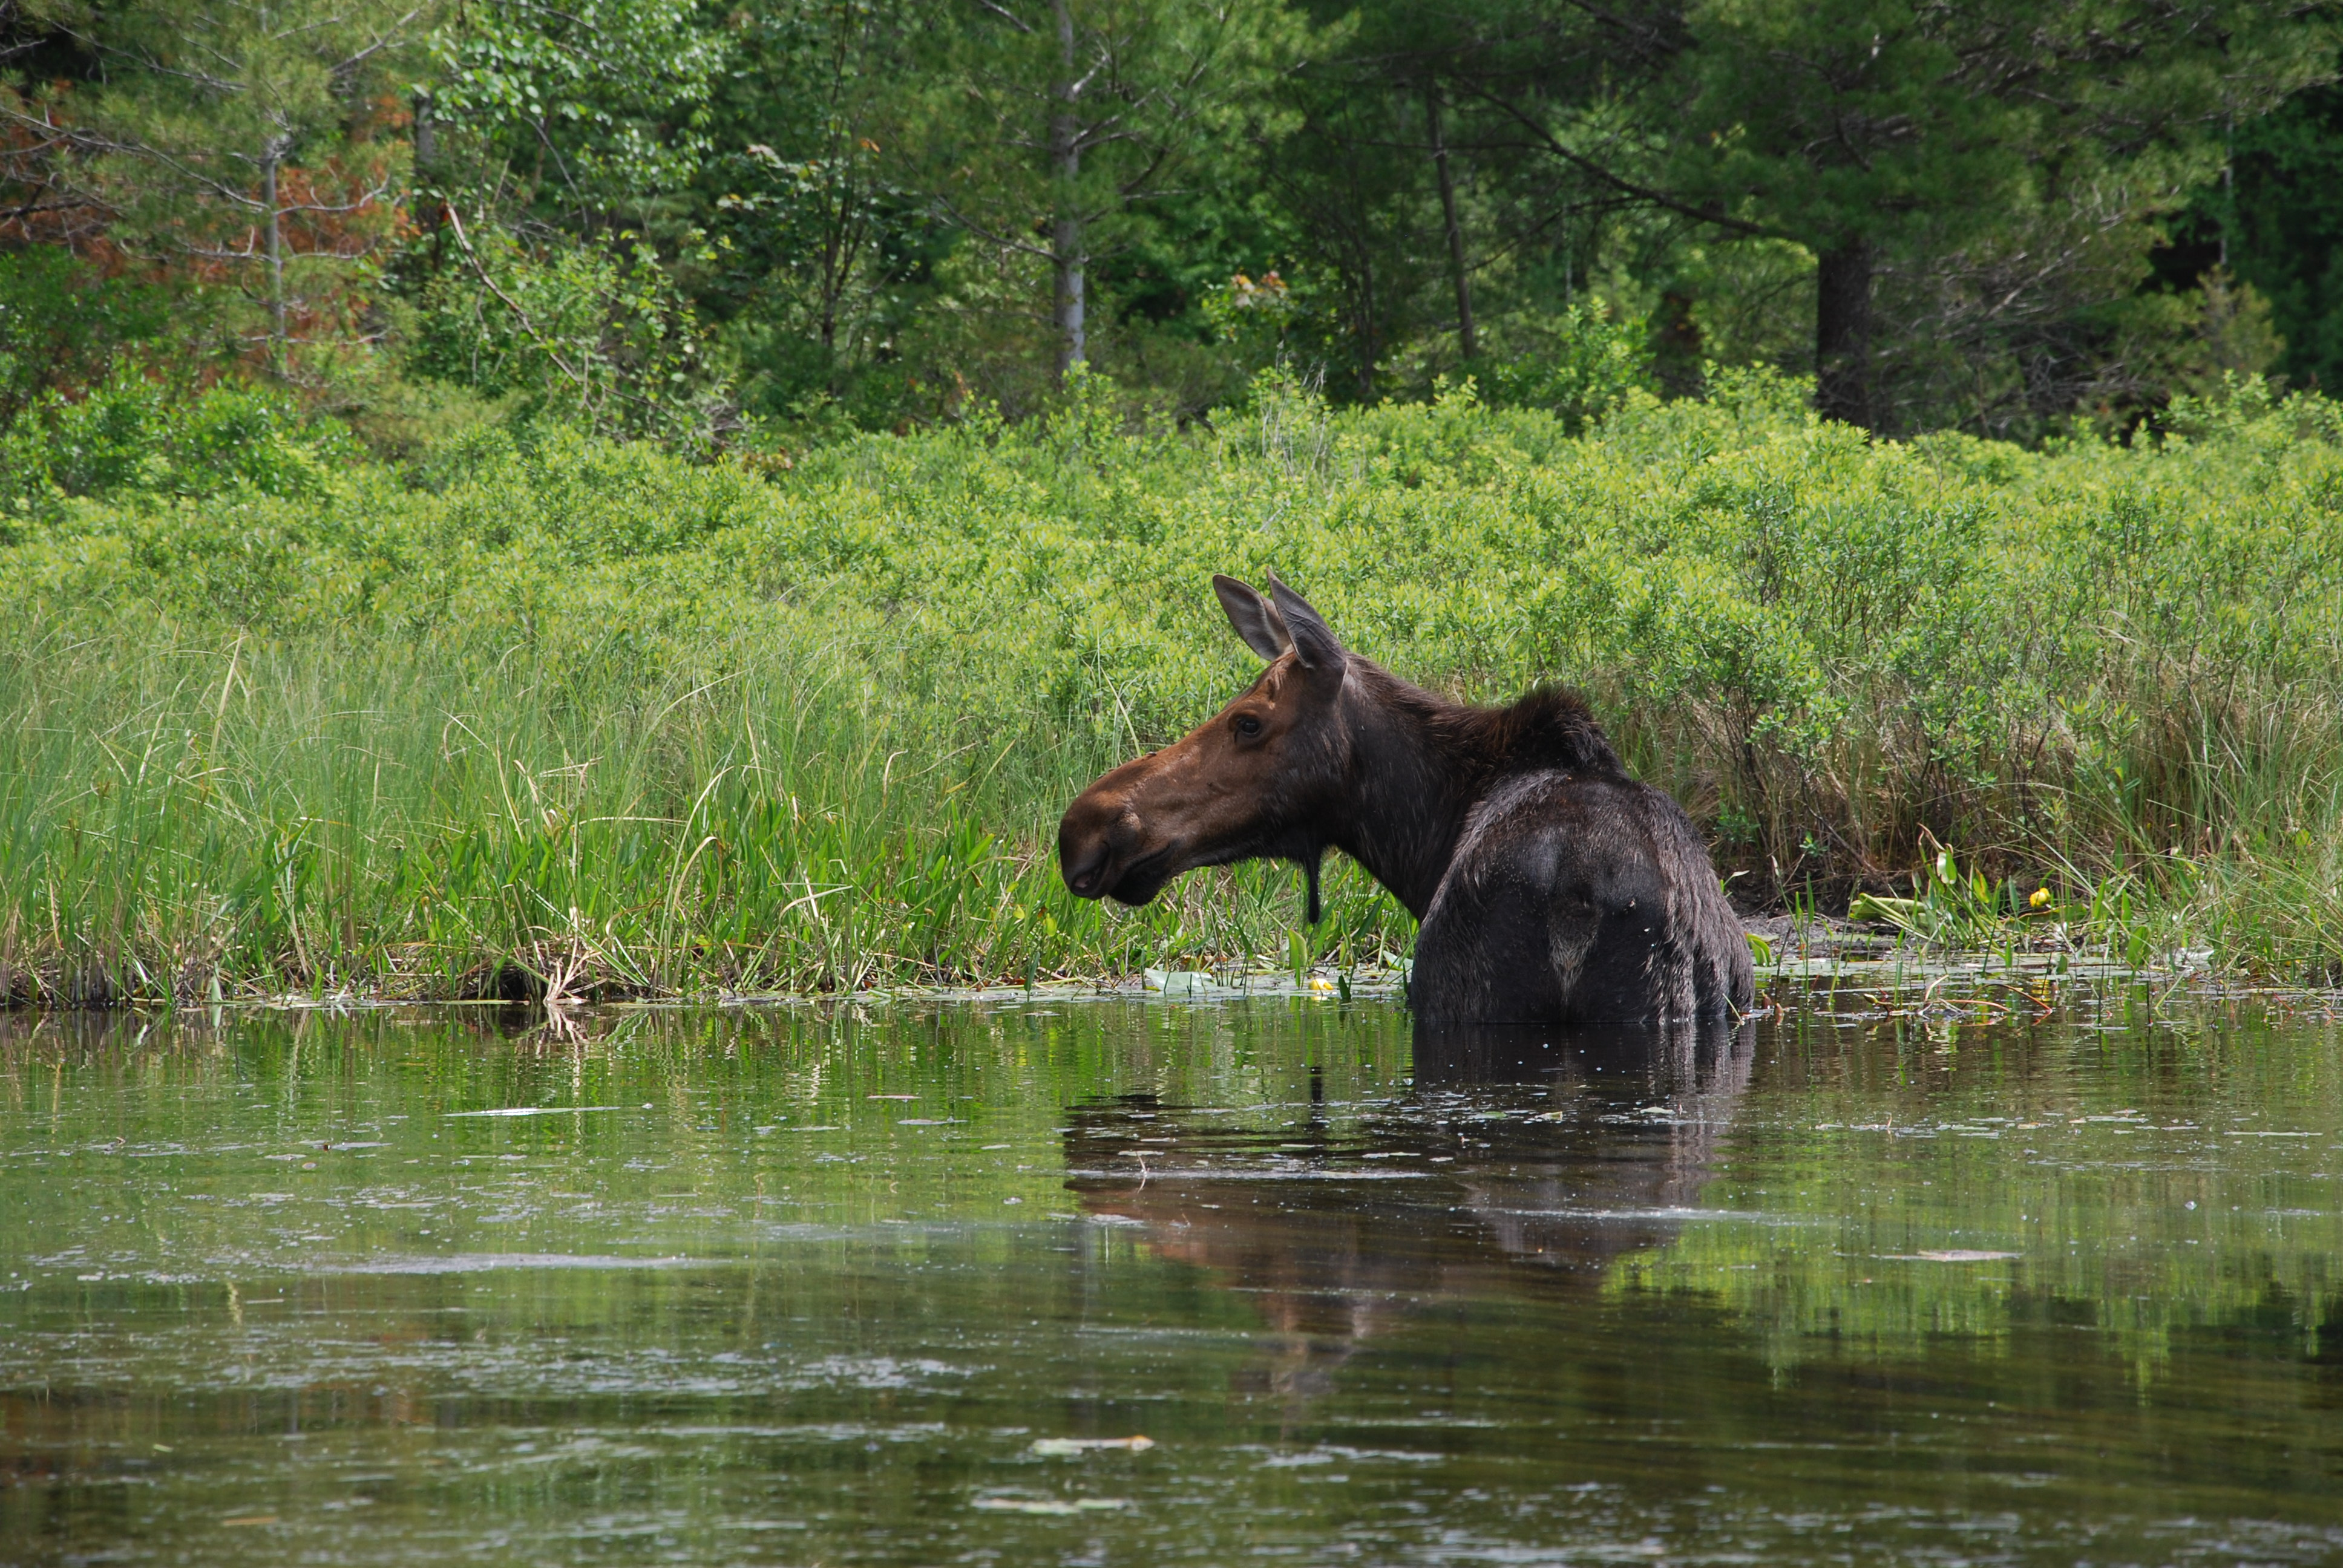 trip overview and navigation through algonquin park Located 15 minutes to algonquin park west gate on hwy 60 makes us at   suggestions, and advice on making your visit a memorable one.